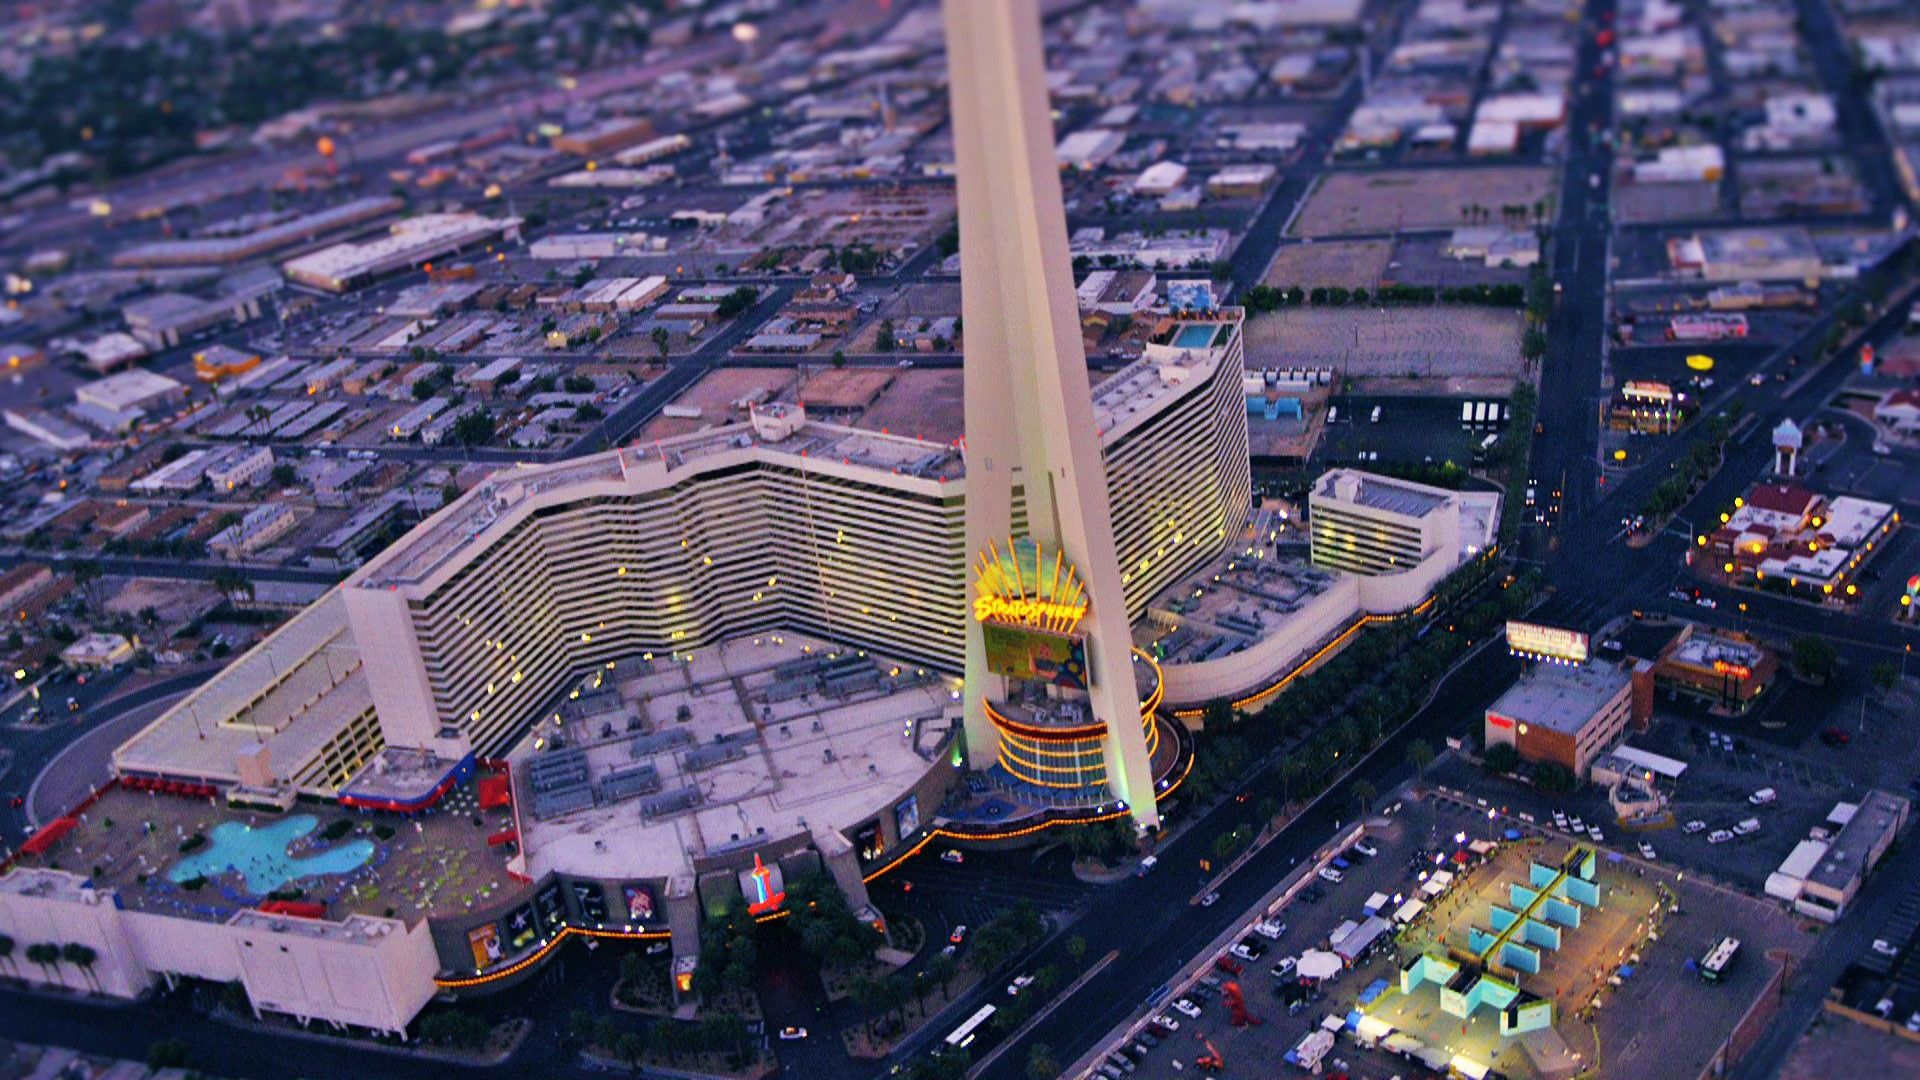 Aerial view of the stratosphere tower and portable